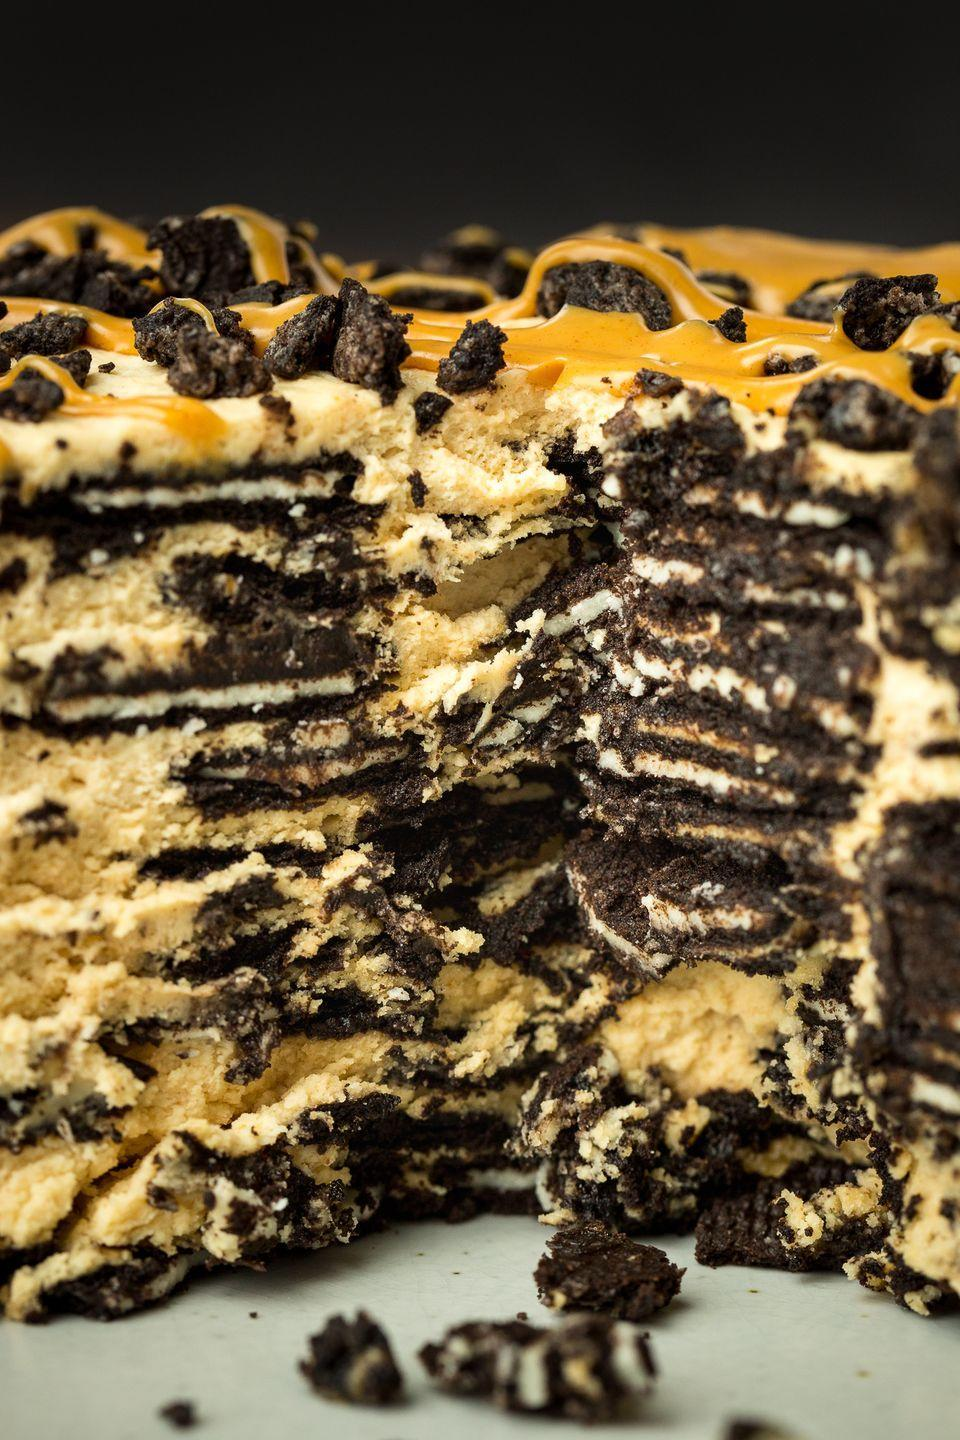 """<p>Peanut butter and Oreos may be the world's greatest combination.</p><p>Get the recipe from <a href=""""https://www.delish.com/cooking/recipe-ideas/recipes/a47079/peanut-butter-oreo-icebox-cake/"""" rel=""""nofollow noopener"""" target=""""_blank"""" data-ylk=""""slk:Delish"""" class=""""link rapid-noclick-resp"""">Delish</a>.</p>"""